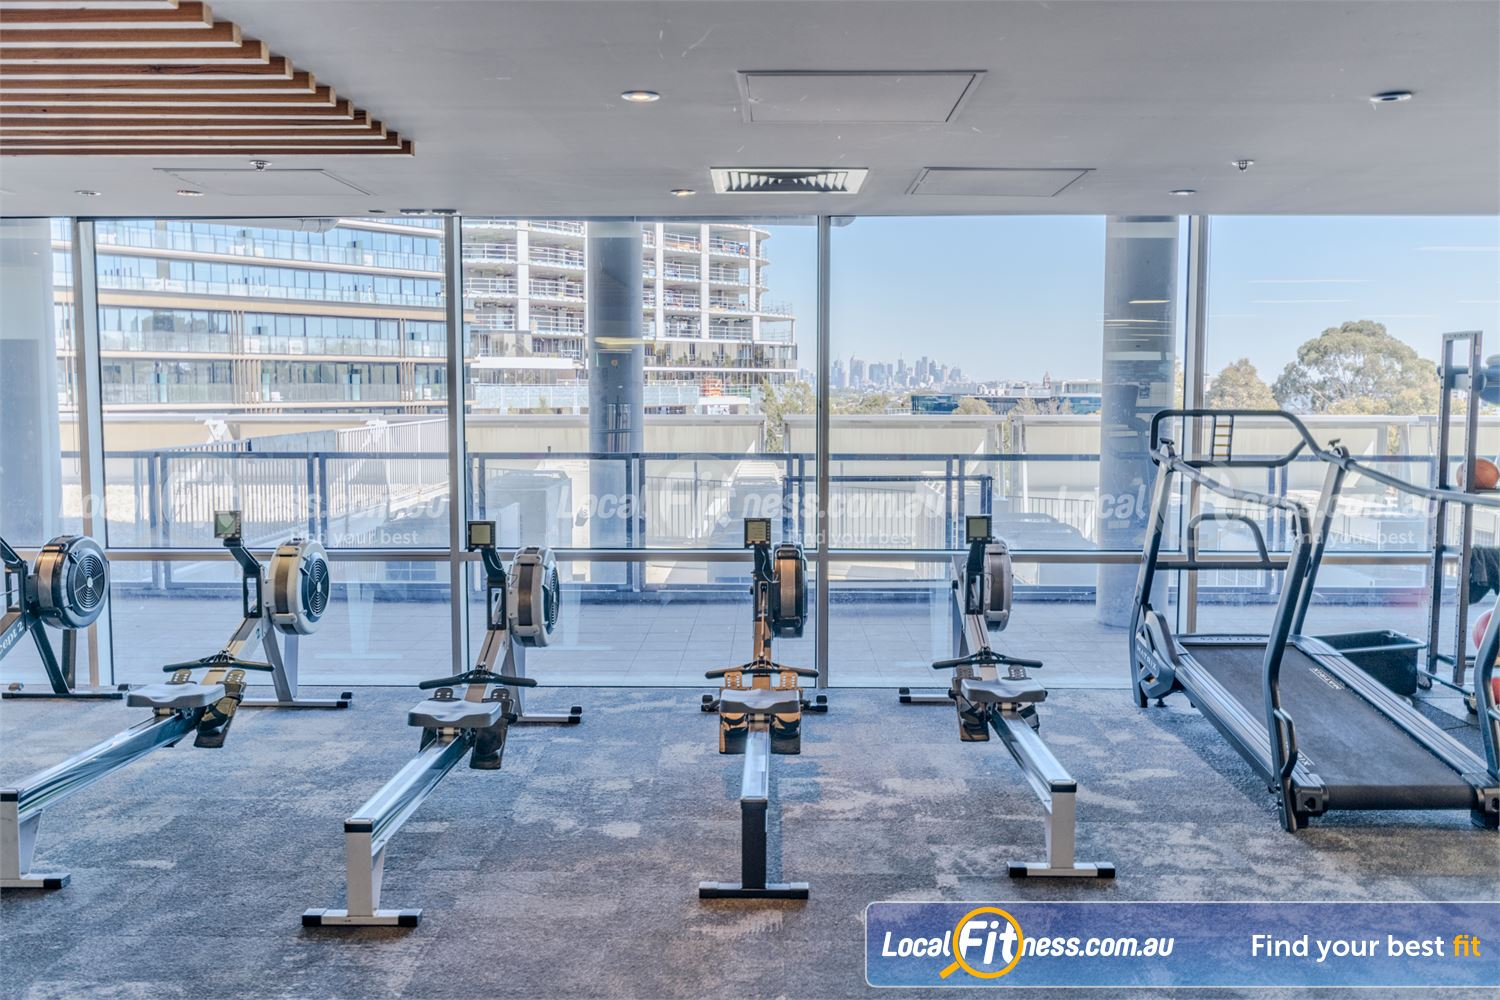 Goodlife Health Clubs Camberwell Welcome to the Camberwell gym with scenic skyline views of Melbourne.